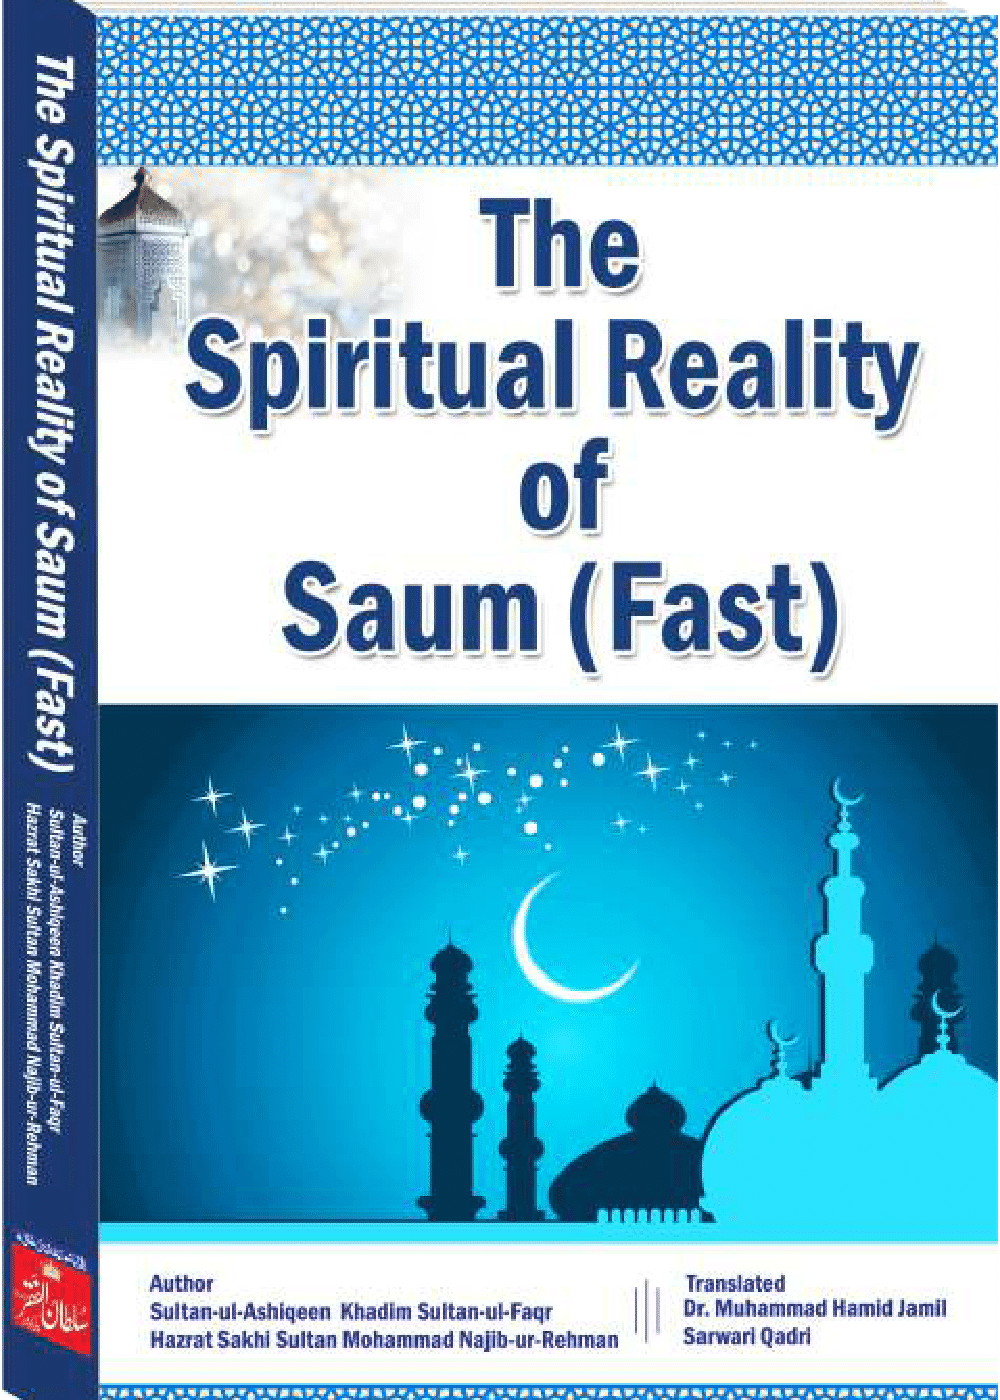 The Spiritual Reality of Fast (Saum)